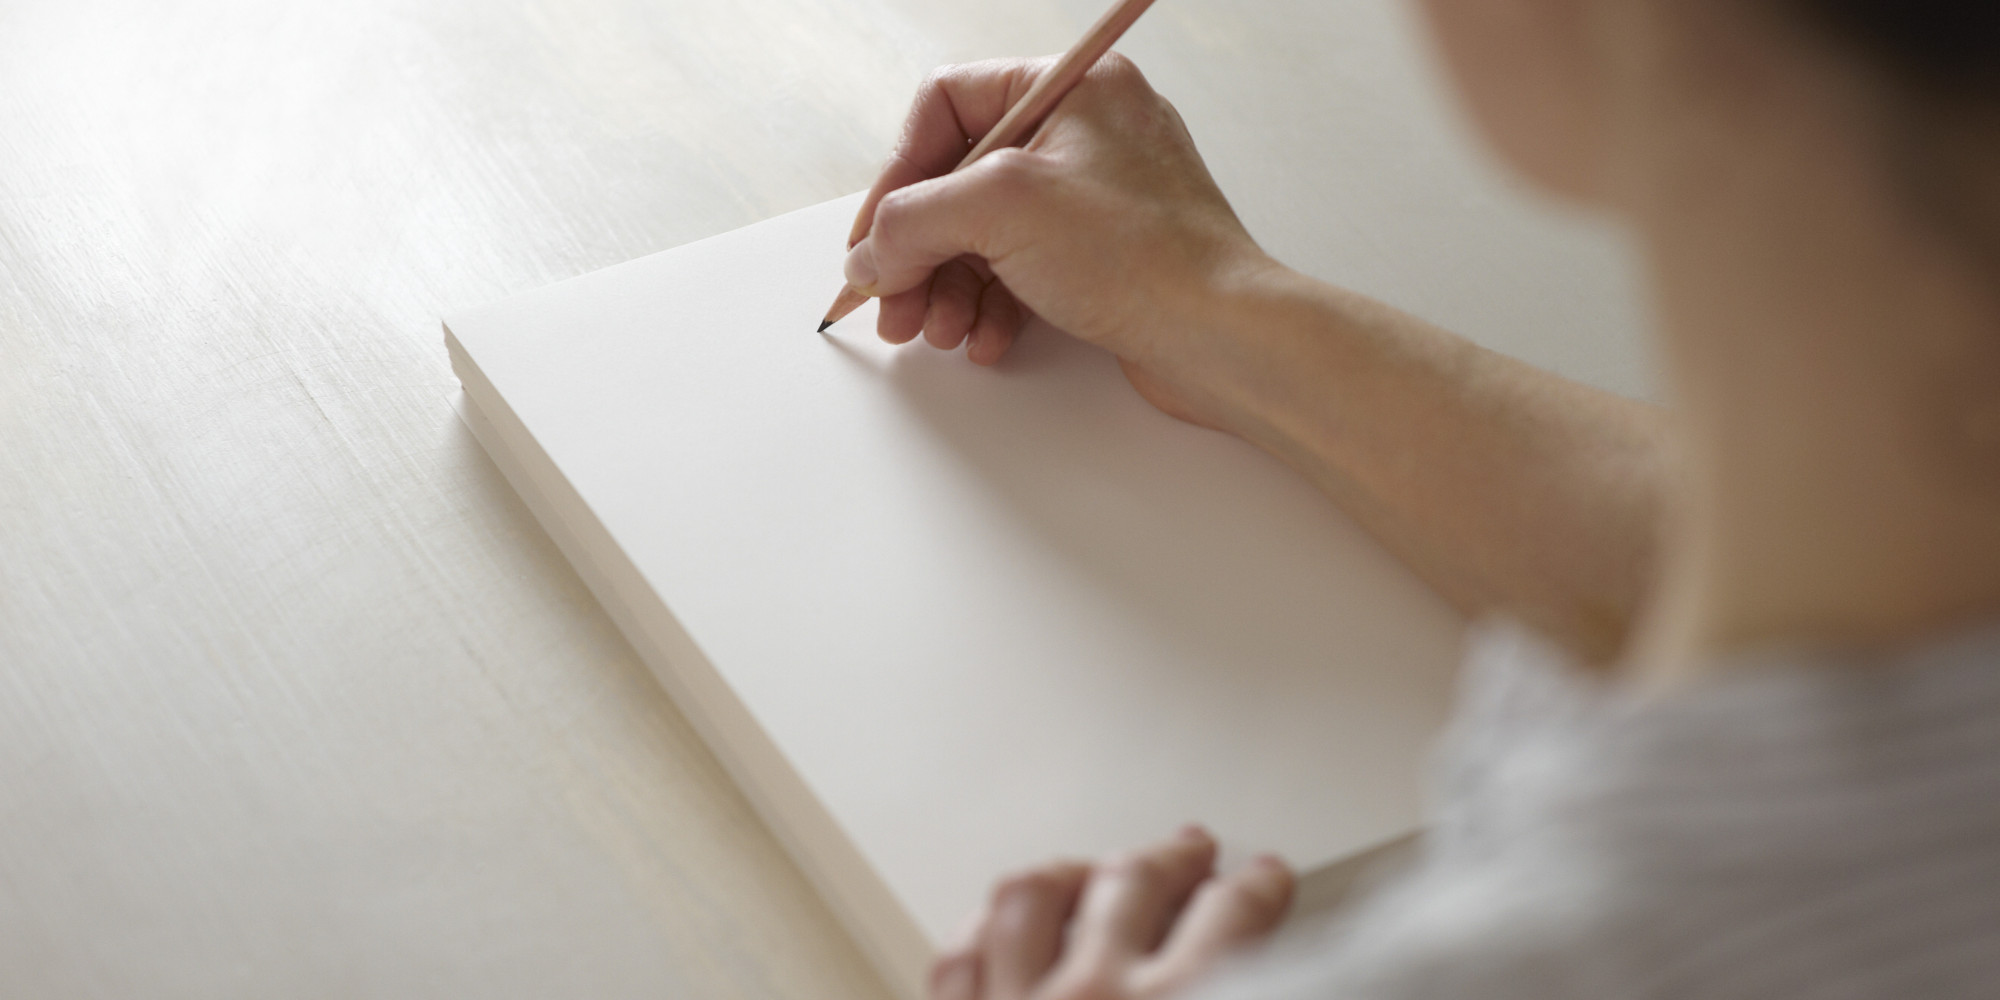 Woman about to draw on blank pad of paper